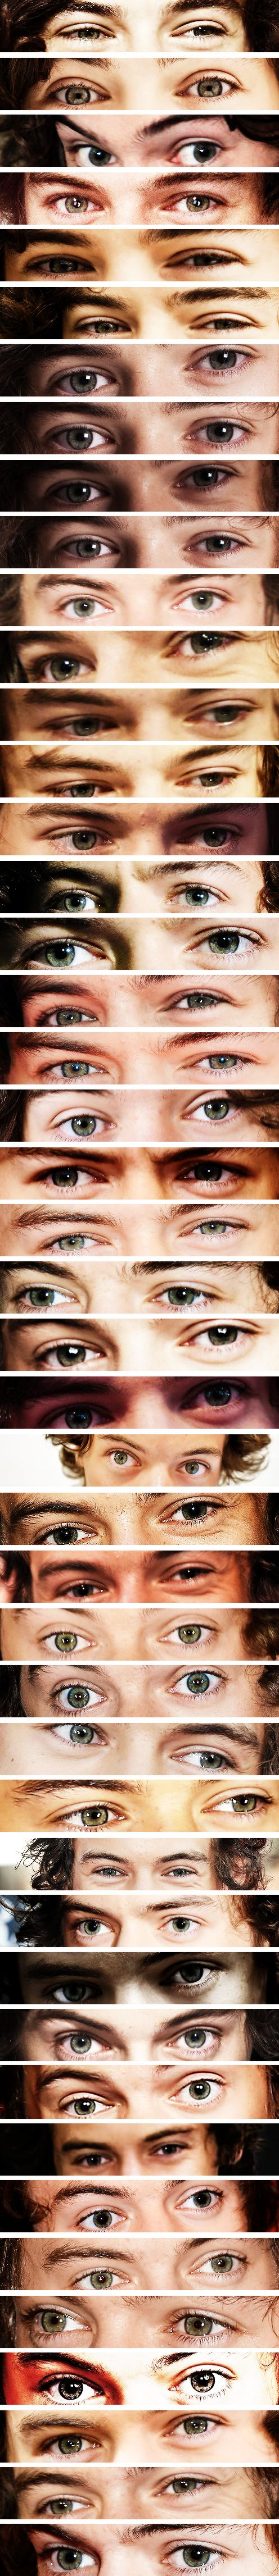 WHO MADE THIS MASTER POST OF HARRY STYLES'S EYES. THEY MUST DIE